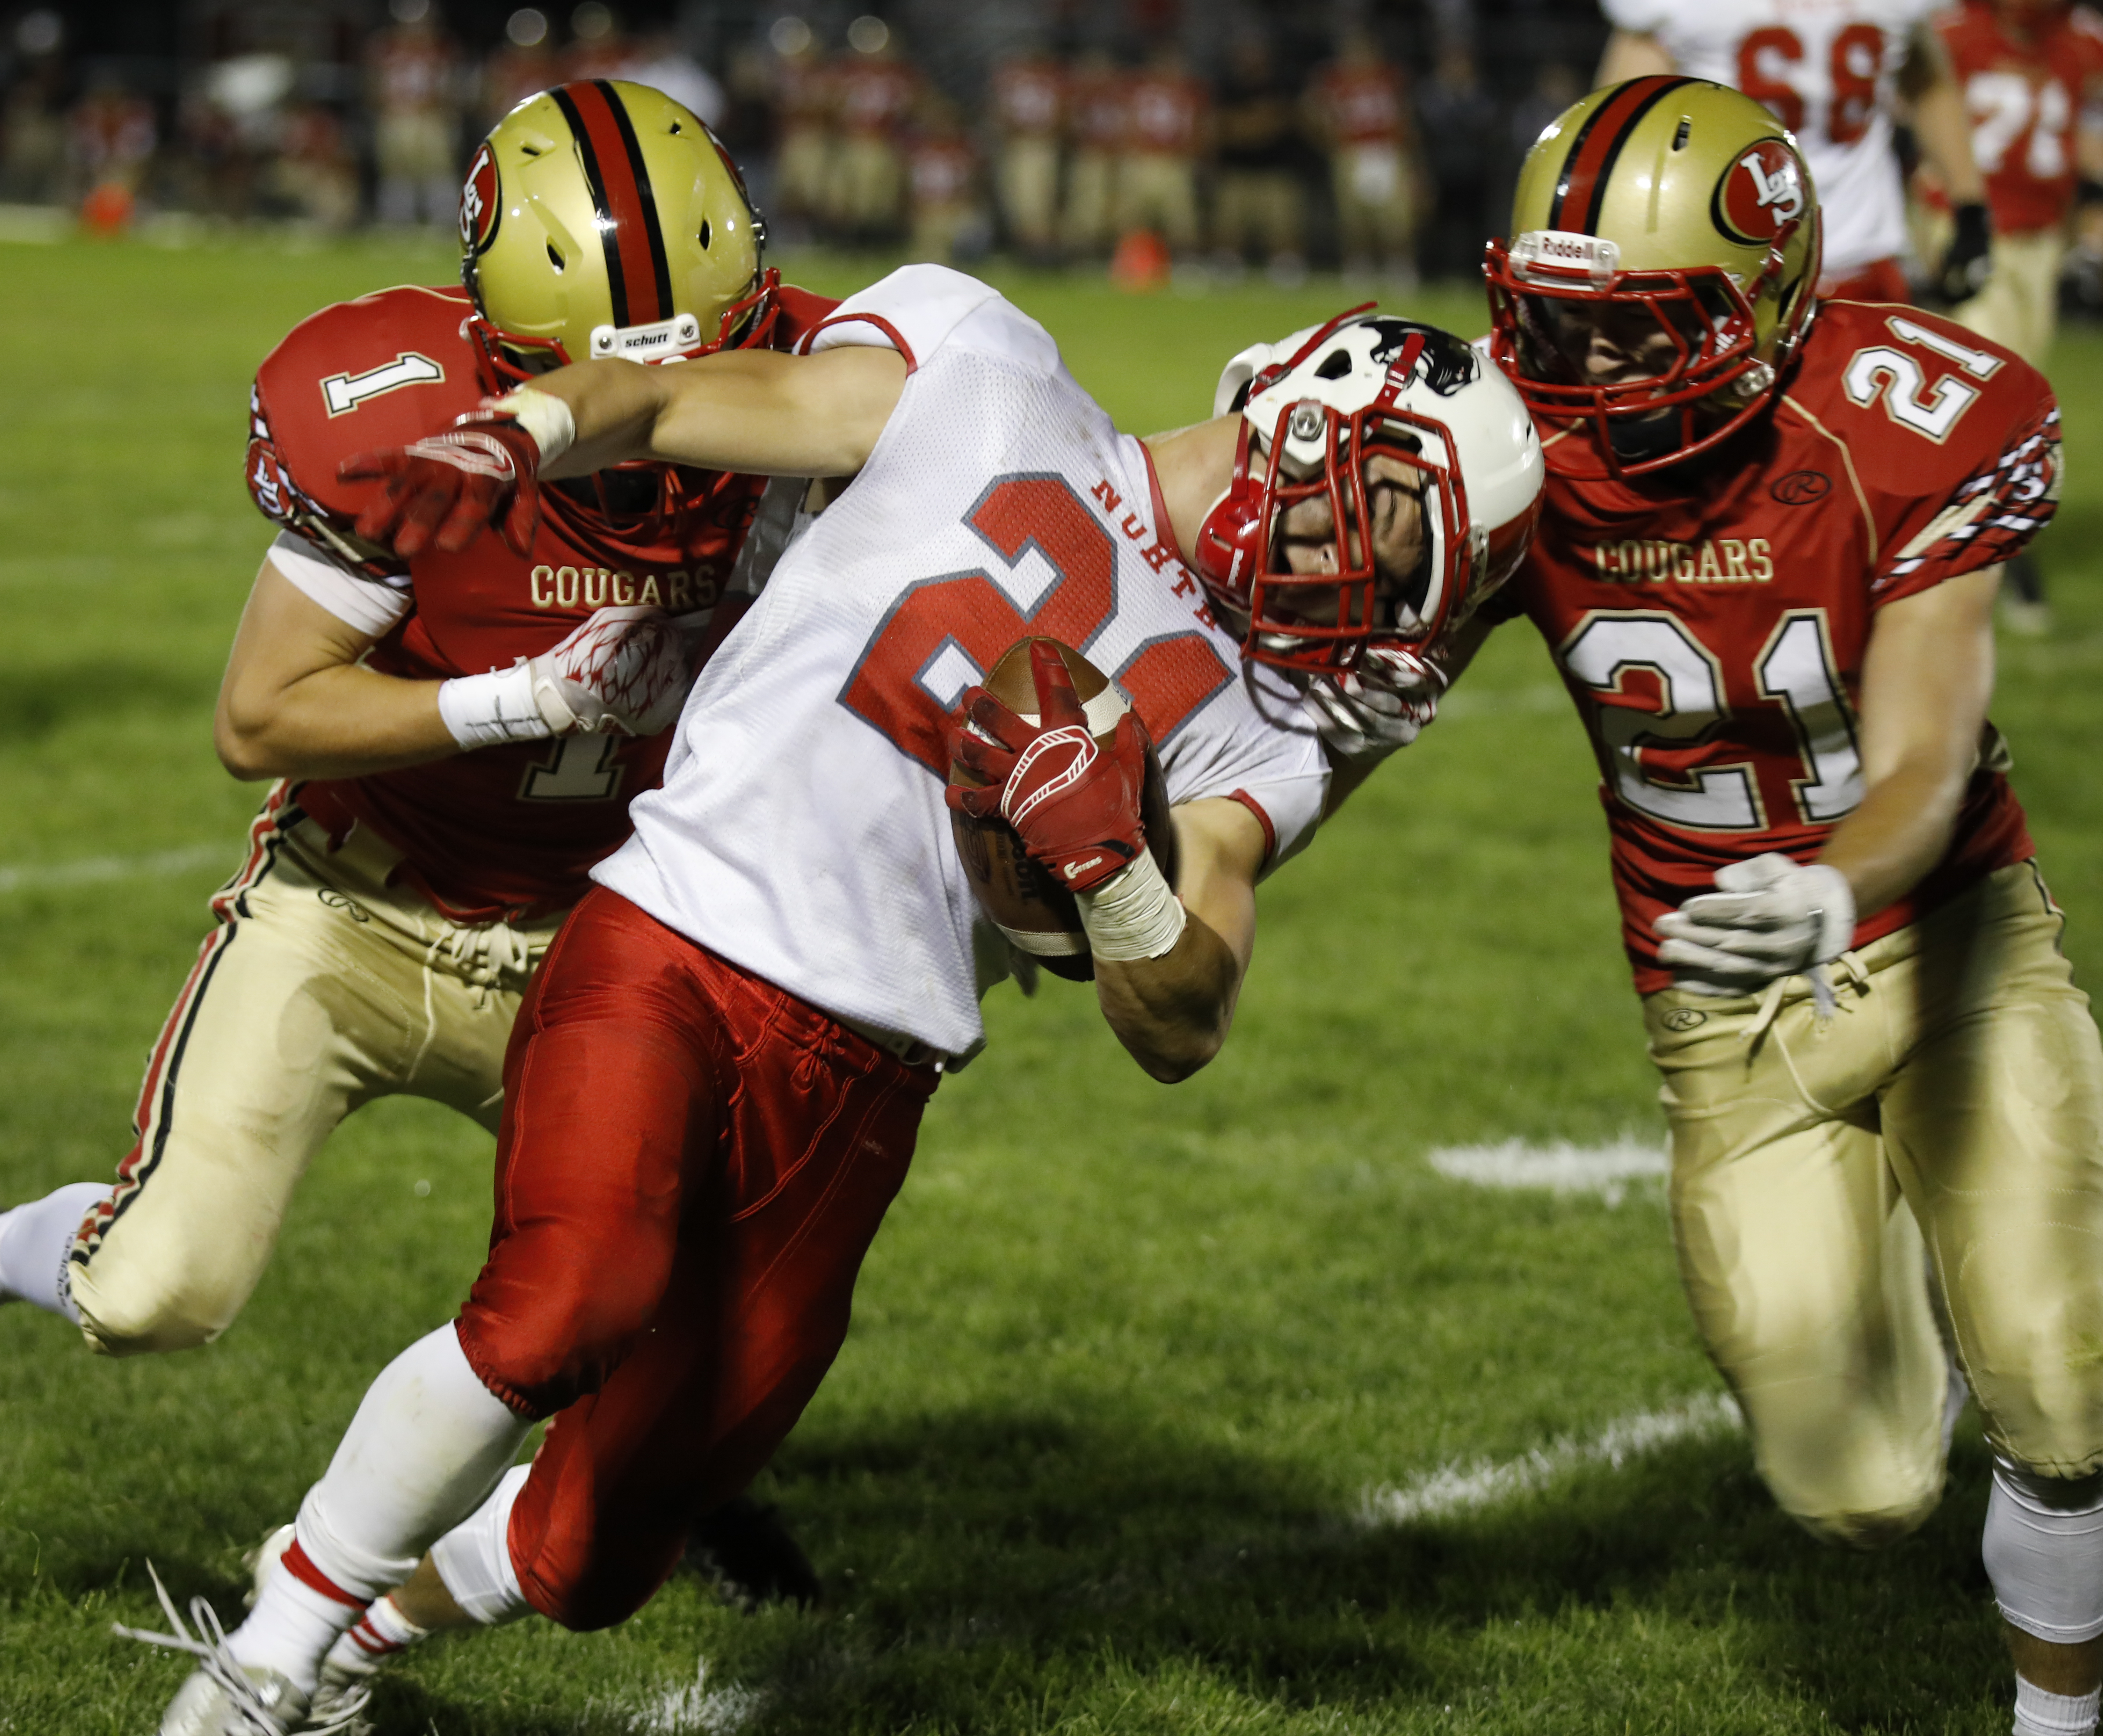 Wade Sullivan (21), the runningback for Lakeville North gets tackled out of bounds at their 30 yard line. Wade ran for 126 yards and four touchdowns to lead the Panthers to a 35-0 win against the crosstown rival Cougars. Photo by Chris Juhn